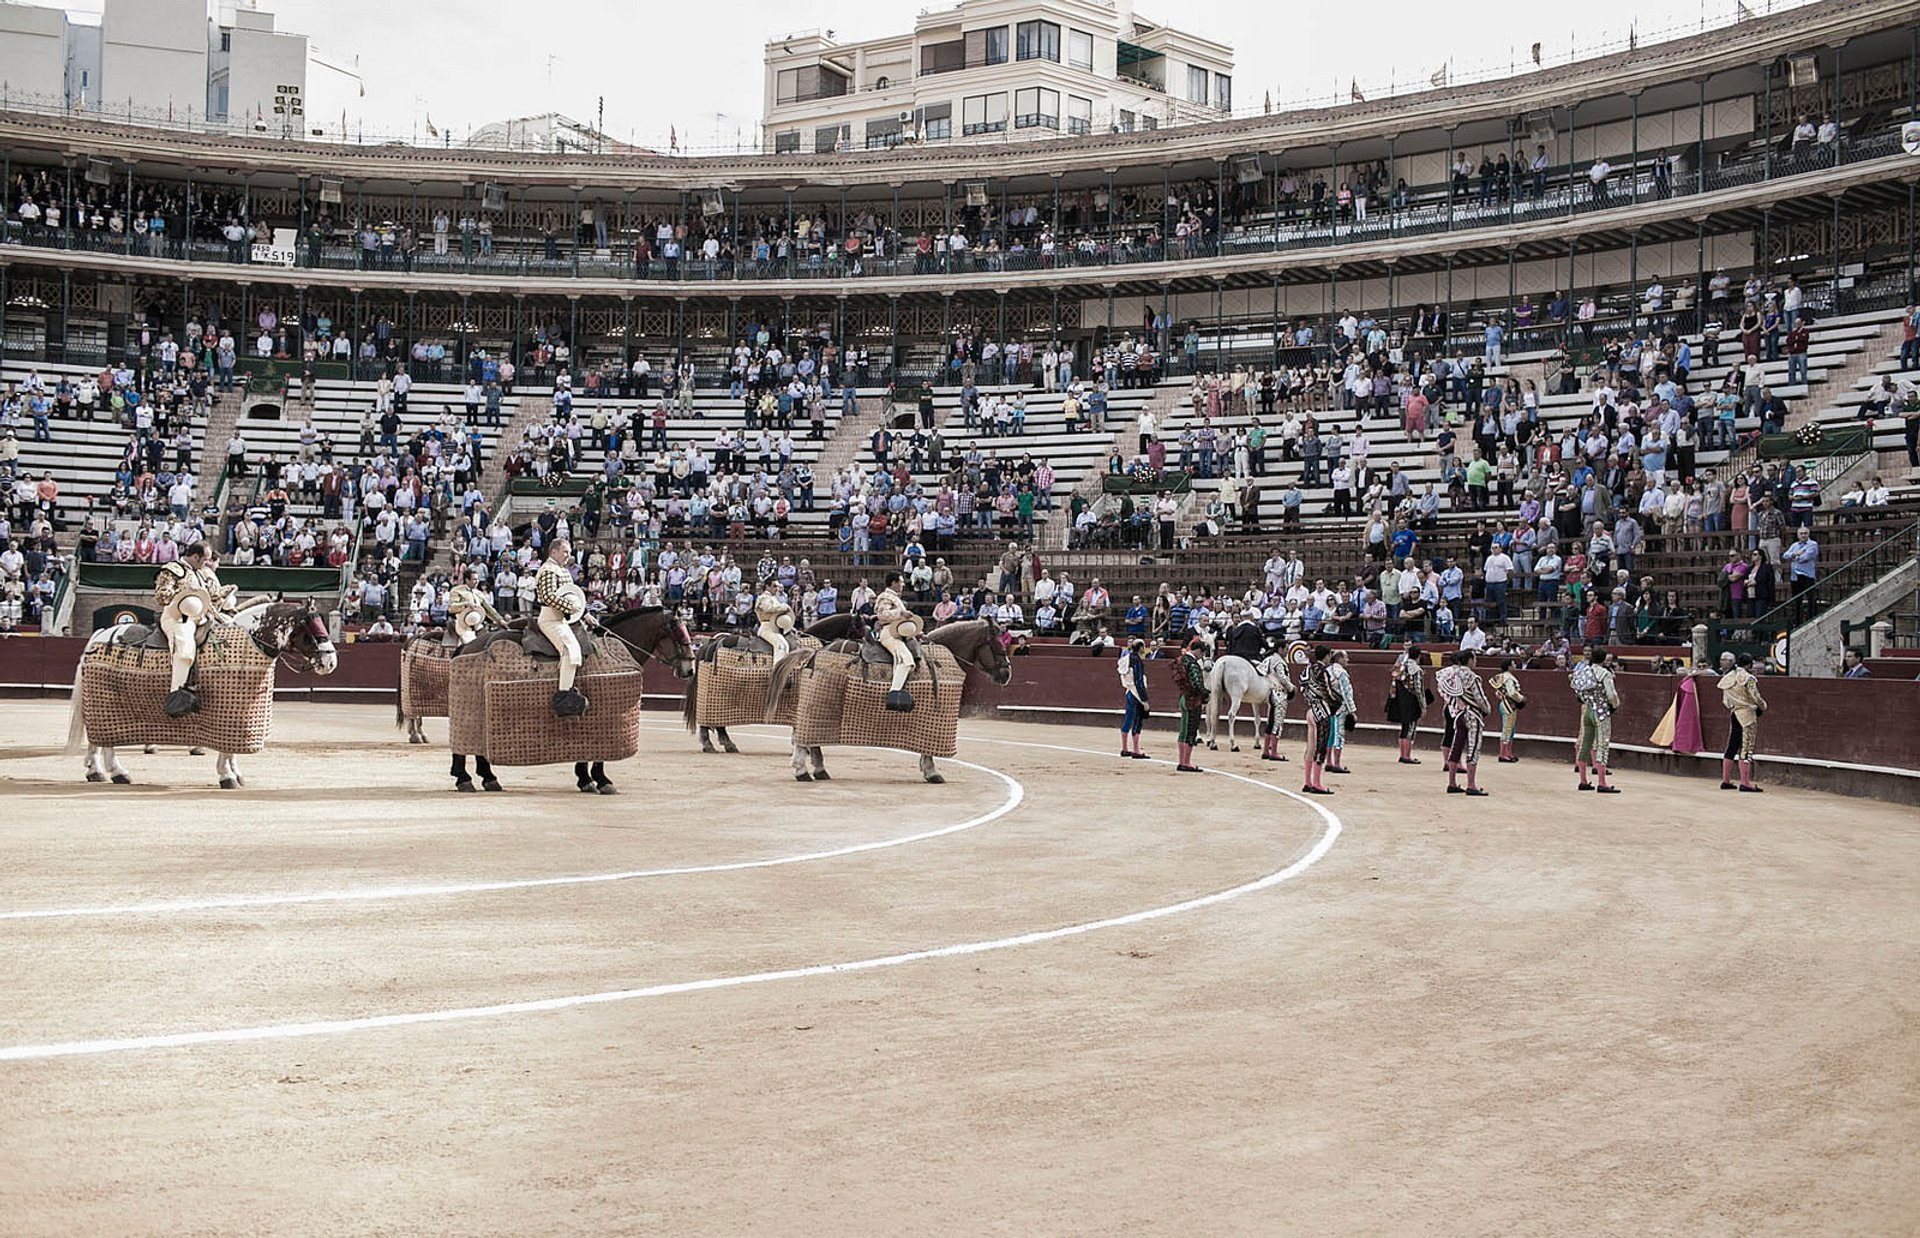 Corrida de Toros (Bullfighting) in Valencia - Best Season 2020